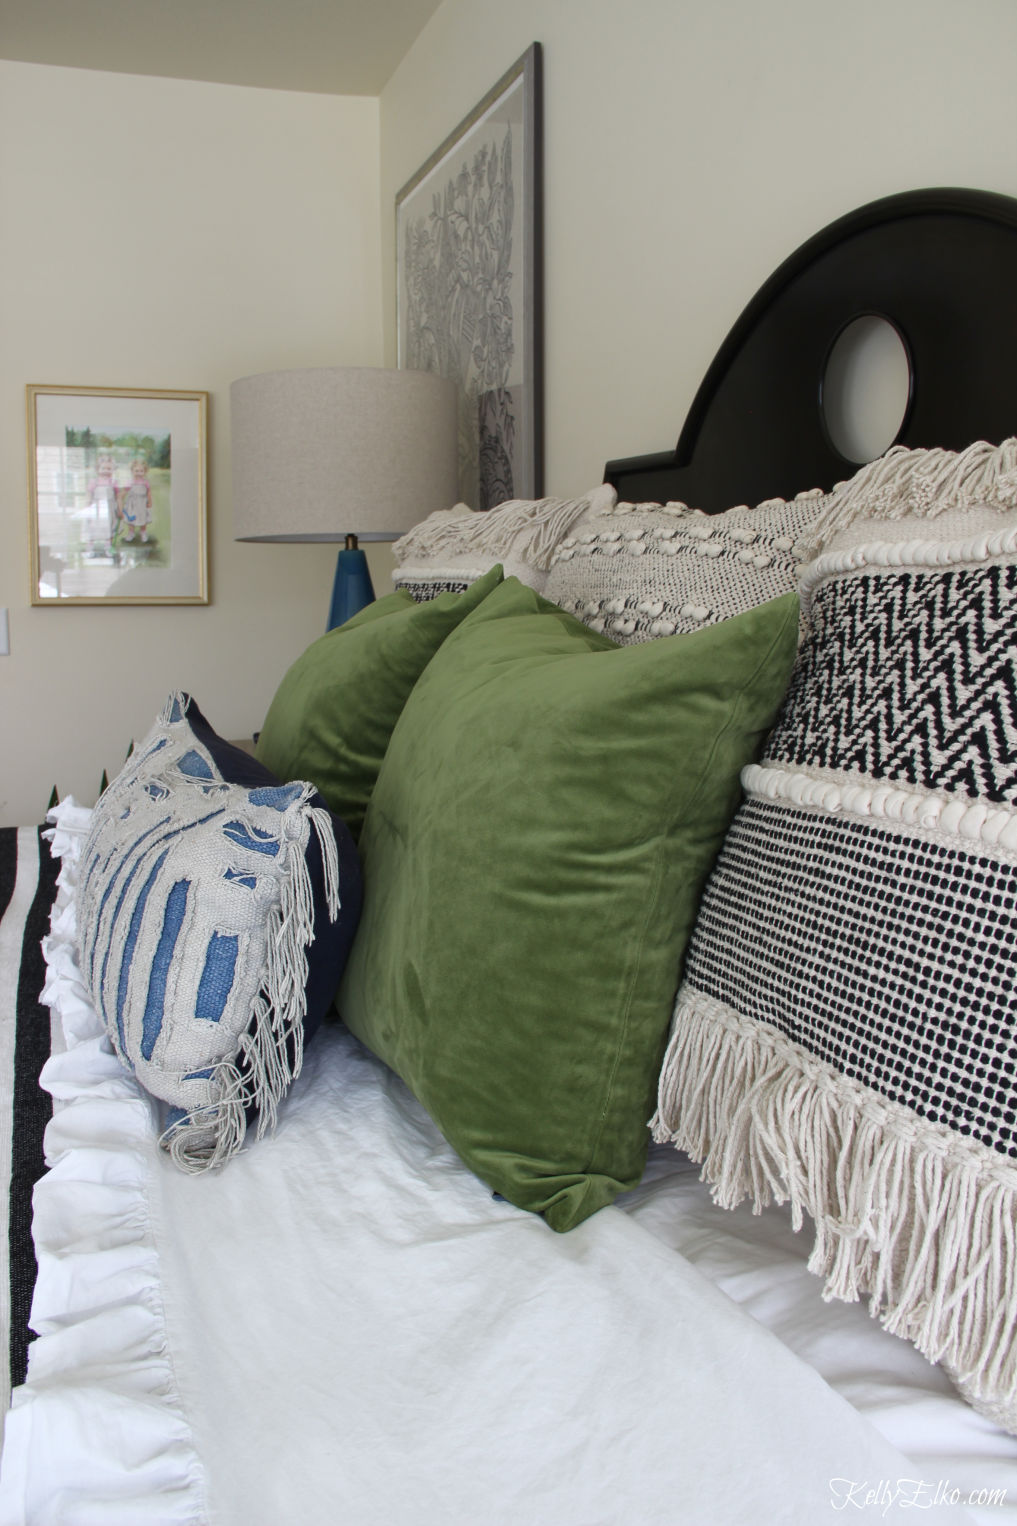 Boho bedding - love the texture of these pillows in this master bedroom kellyelko.com #pillows #bedding #masterbedroom #bedroom #bedding #bohobedroom #interiodecor